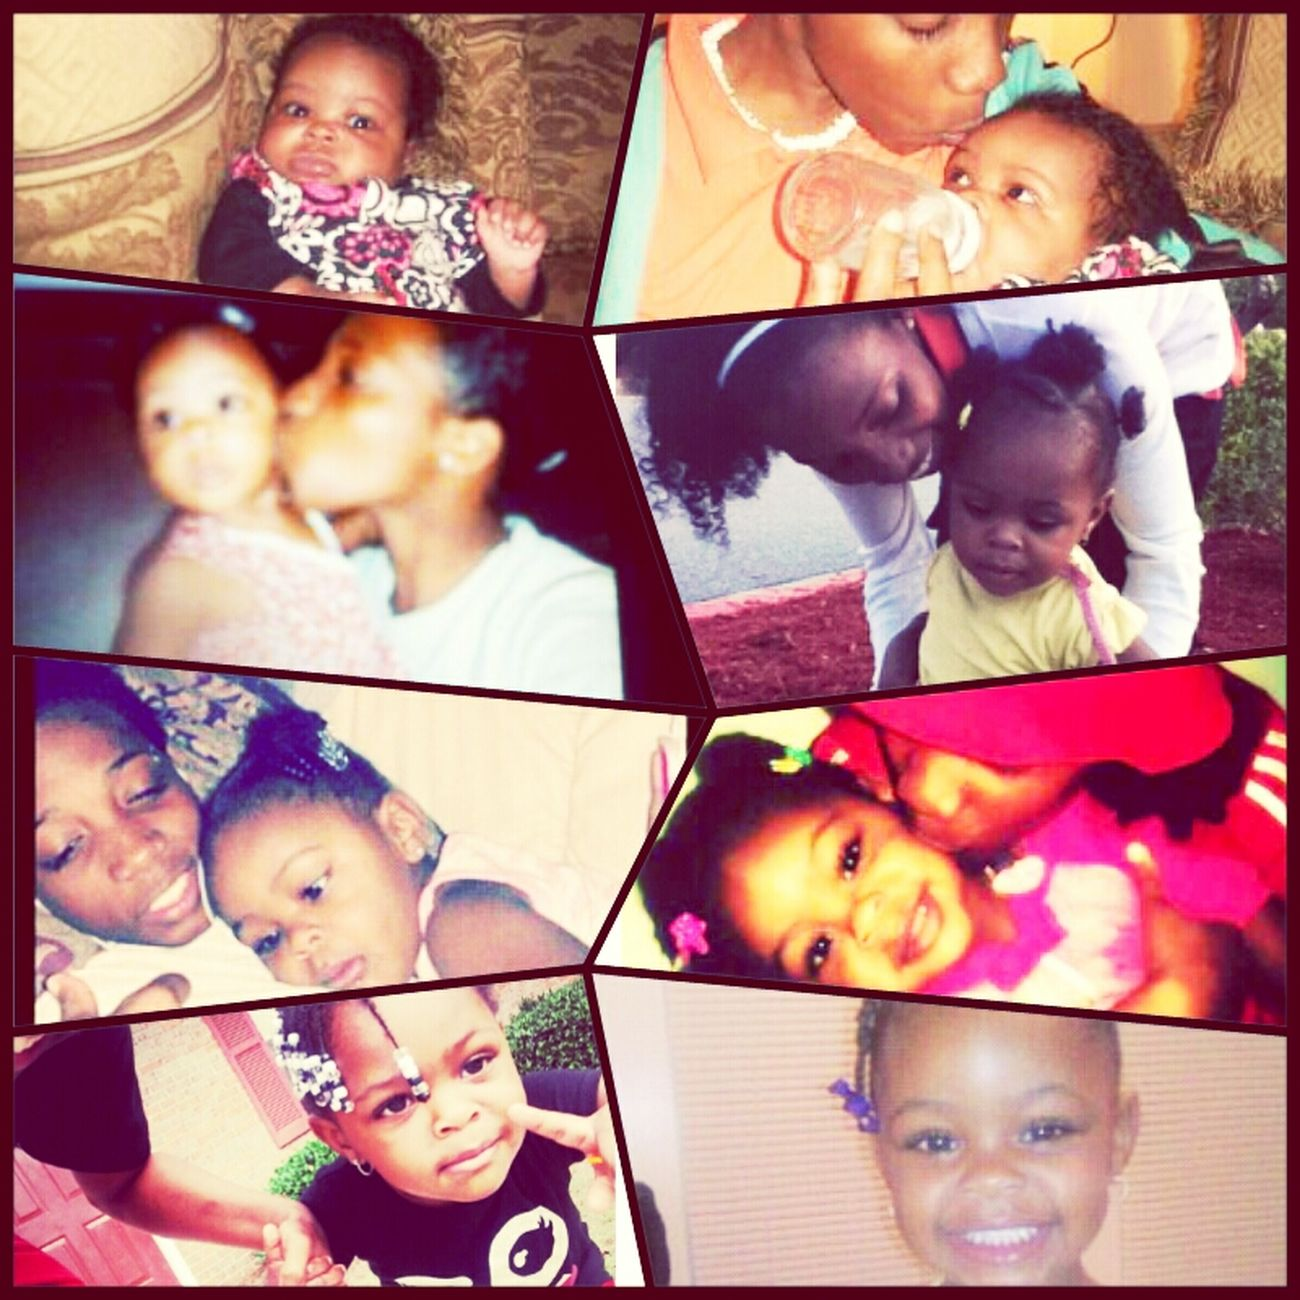 Happy Birthday To My Lil Angel , My Stanka , My Clone , My Heart , My Heartbeat , My Everything ! I Loveee Youu Sooo Muchh Stanka Happy Birthday Auntie Gone Come Turn Up With You :) Your Big 3 Now So Your A Big Girl !